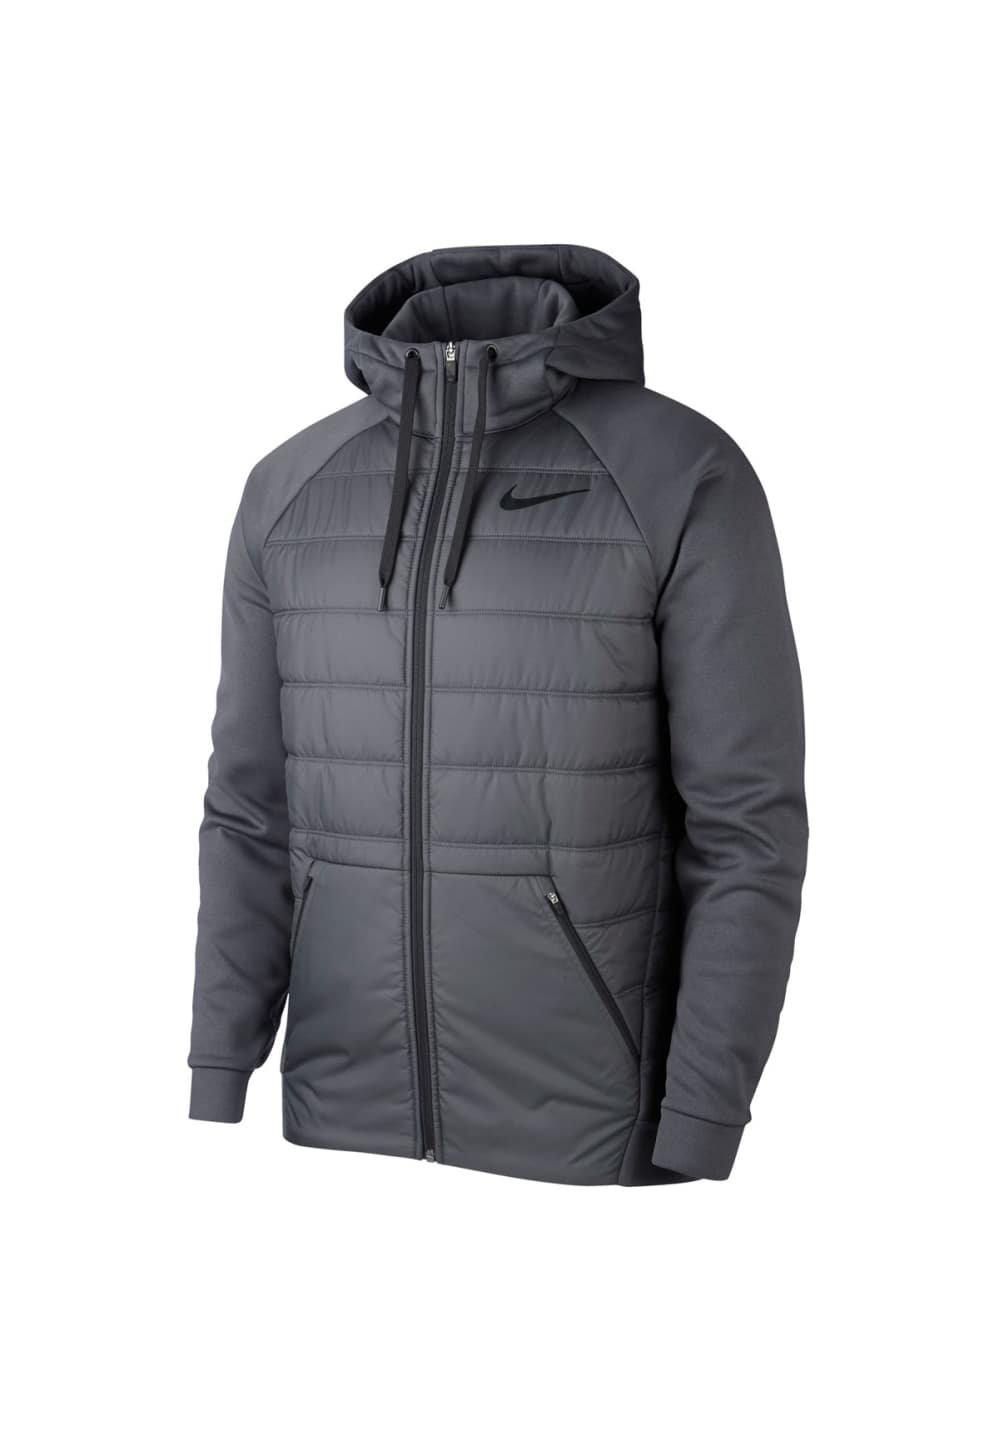 098435111 Nike Therma Full-Zip Hoodie - Vestes course pour Homme - Gris